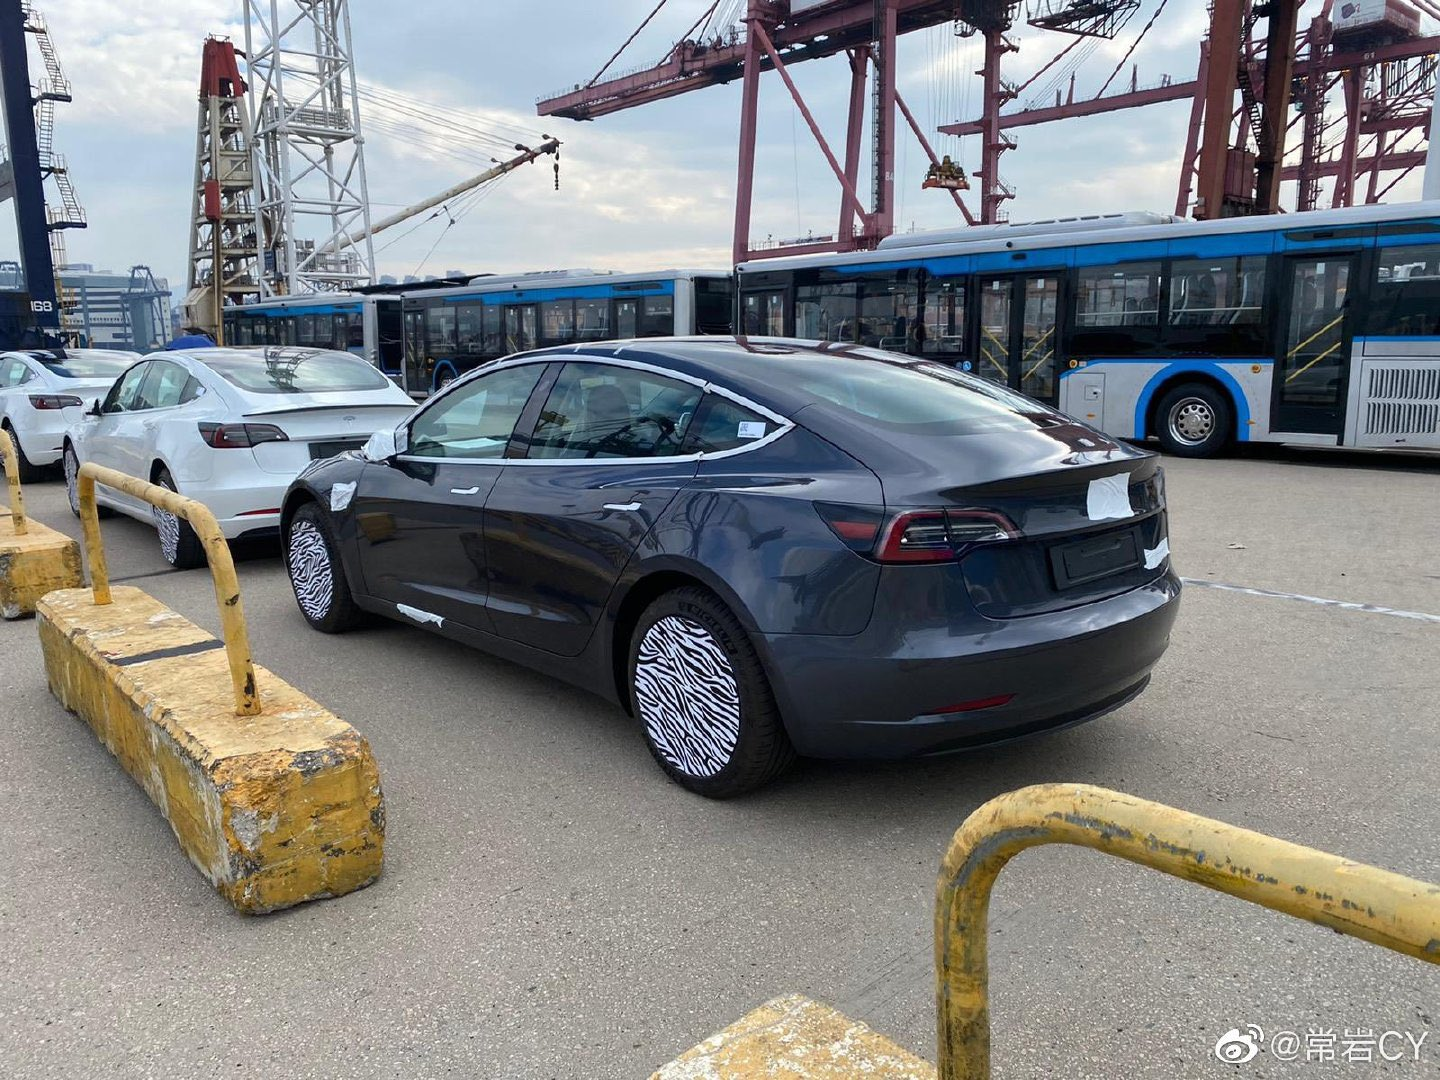 Tesla Giga Shanghai Starts RHD Model 3 Production, Hong Kong 1st to Receive